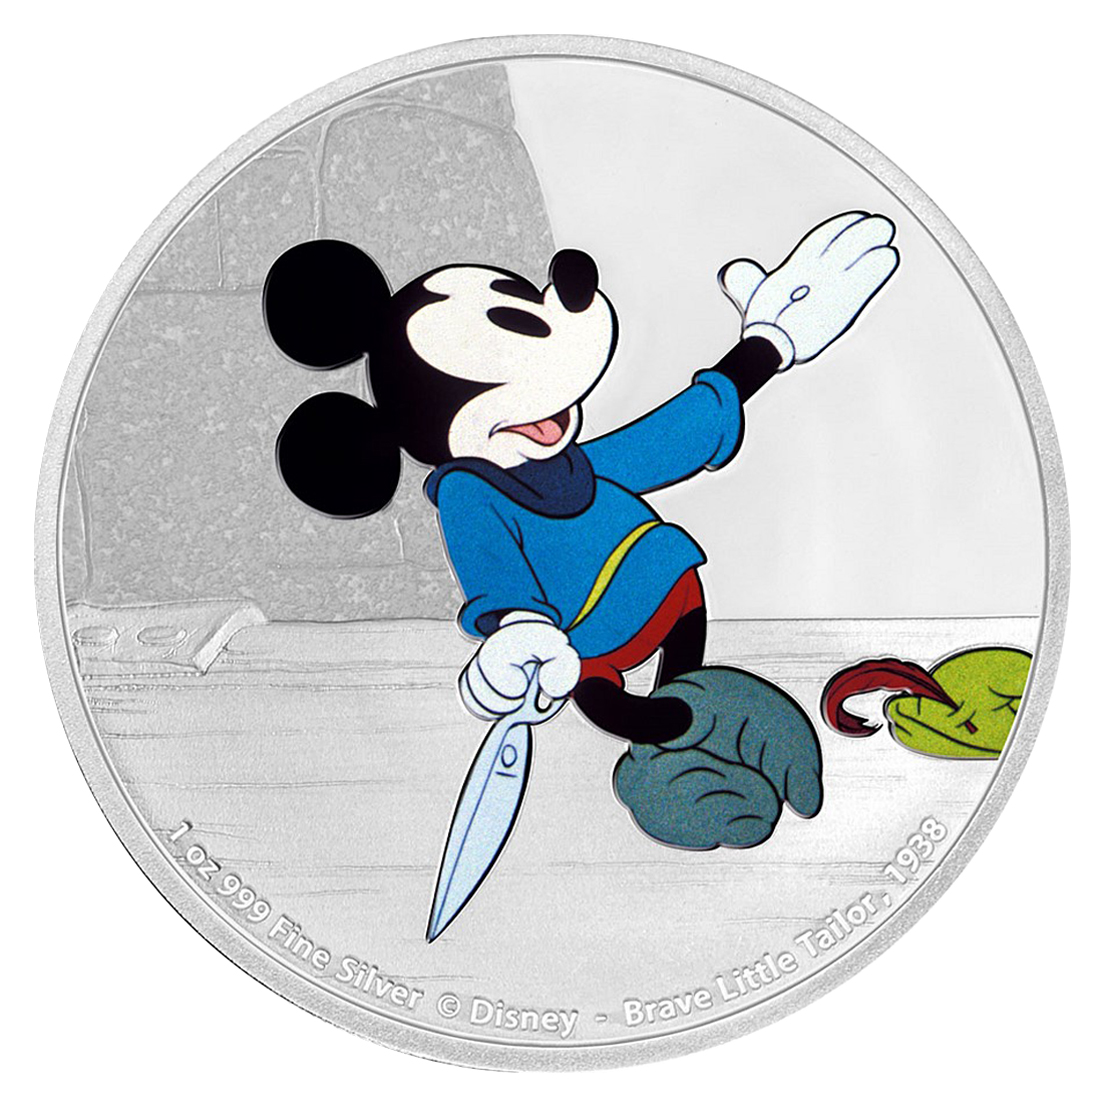 2016 Niue Disney Mickey Through the Ages - Brave Little Tailor 1 oz Silver Colorized Proof $2 GEM Proof OGP